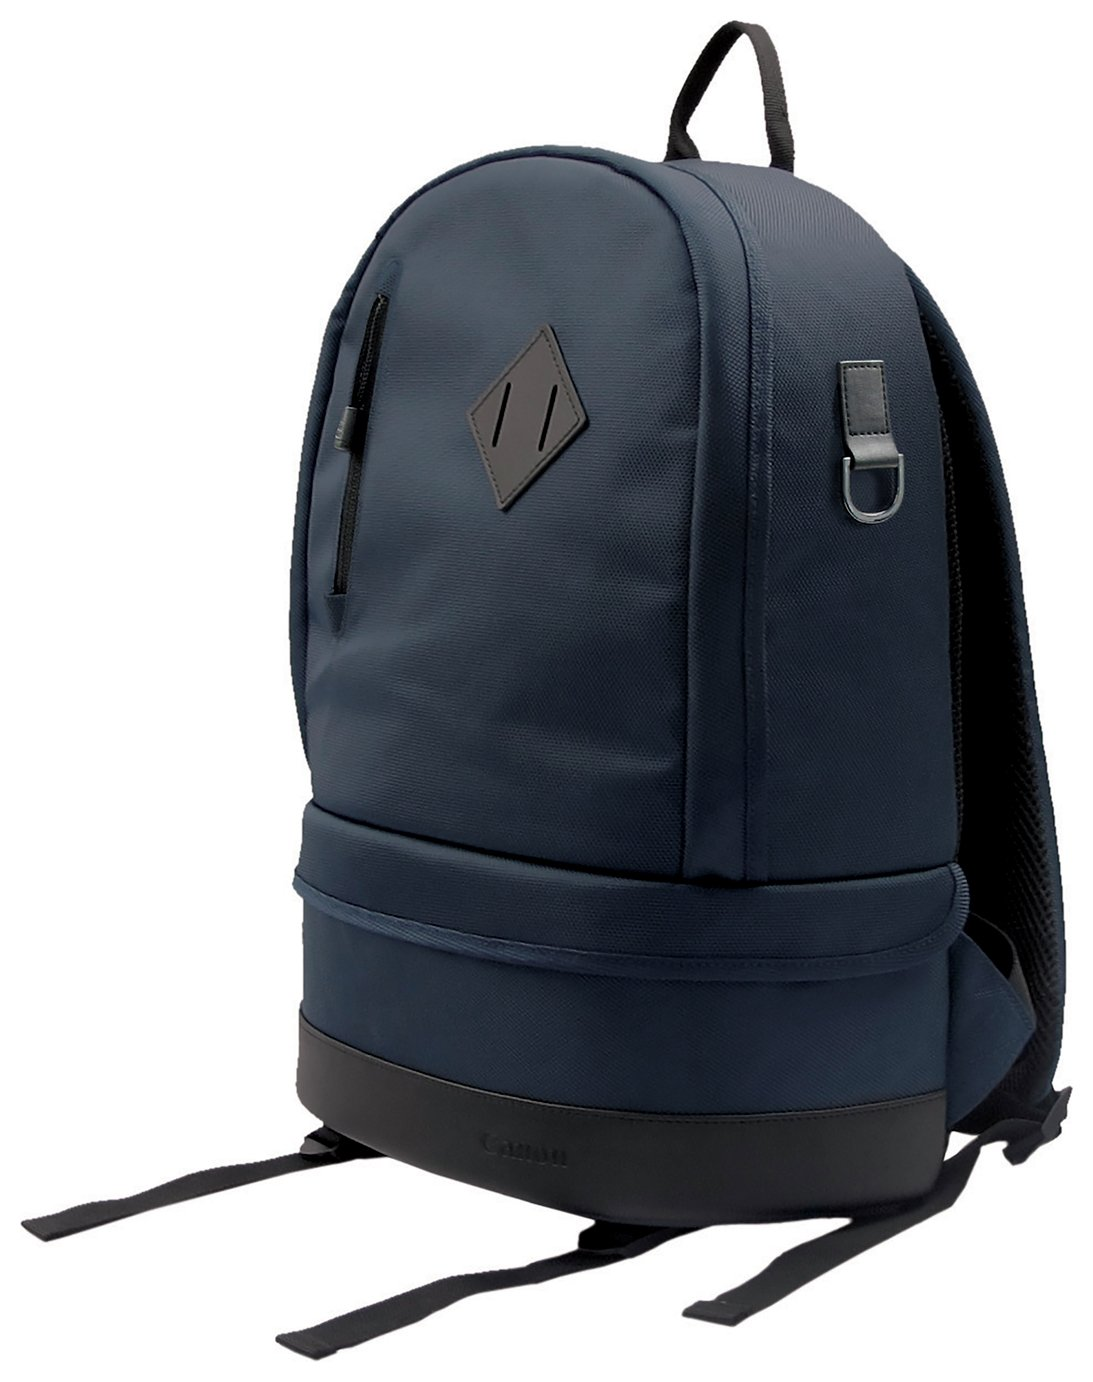 Canon BP100 DSLR Camera Backpack - Navy from Canon